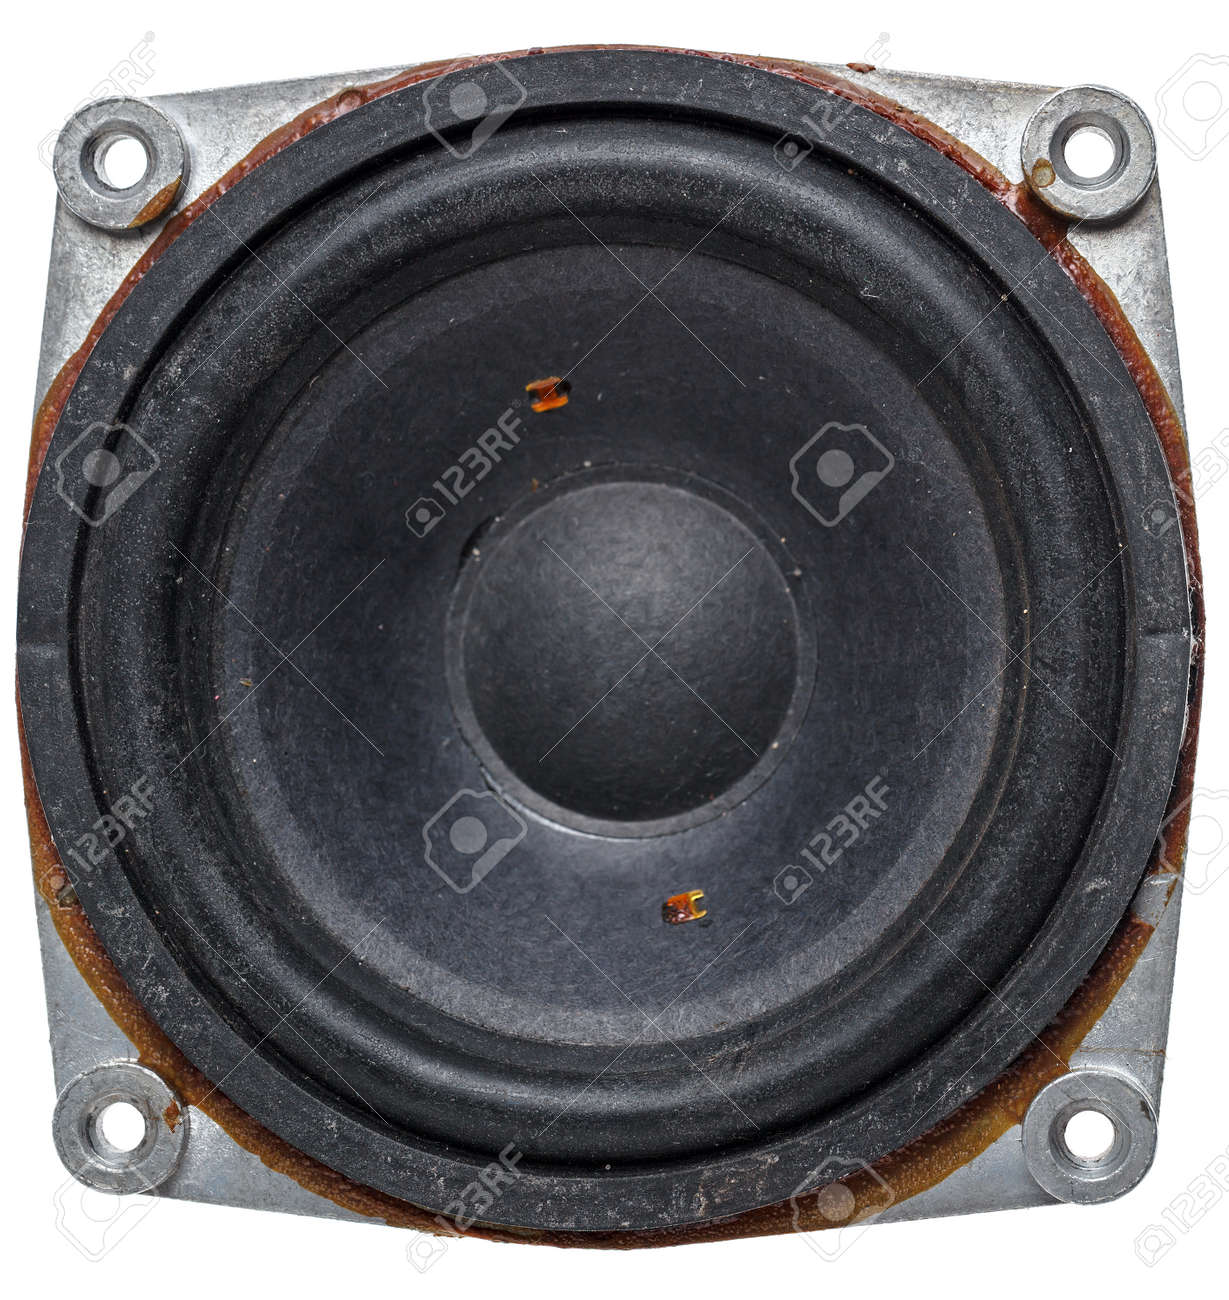 Old acoustic speaker, isolated on a white background Stock Photo - 26658355